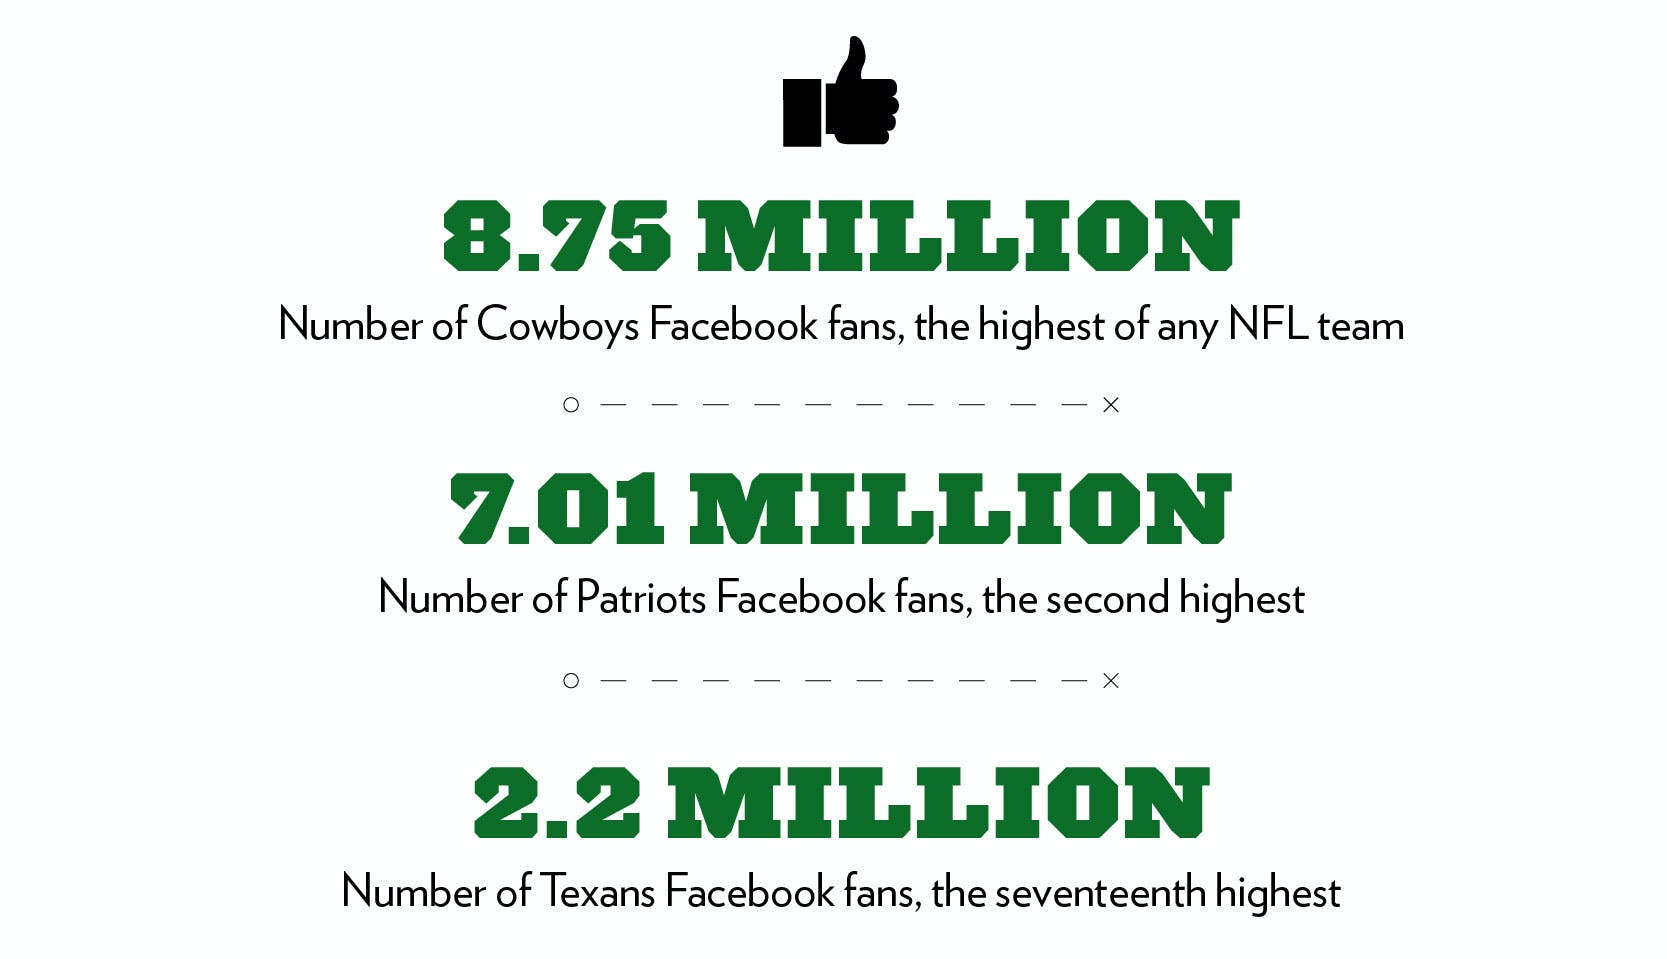 8.75 million: Number of Cowboys Facebook fans, the highest of any NFL team. 7.01 million: Number of Patriots Facebook fans, the second highest. 2.2 Million: Number of Texans Facebook fans, the seventeenth highest.